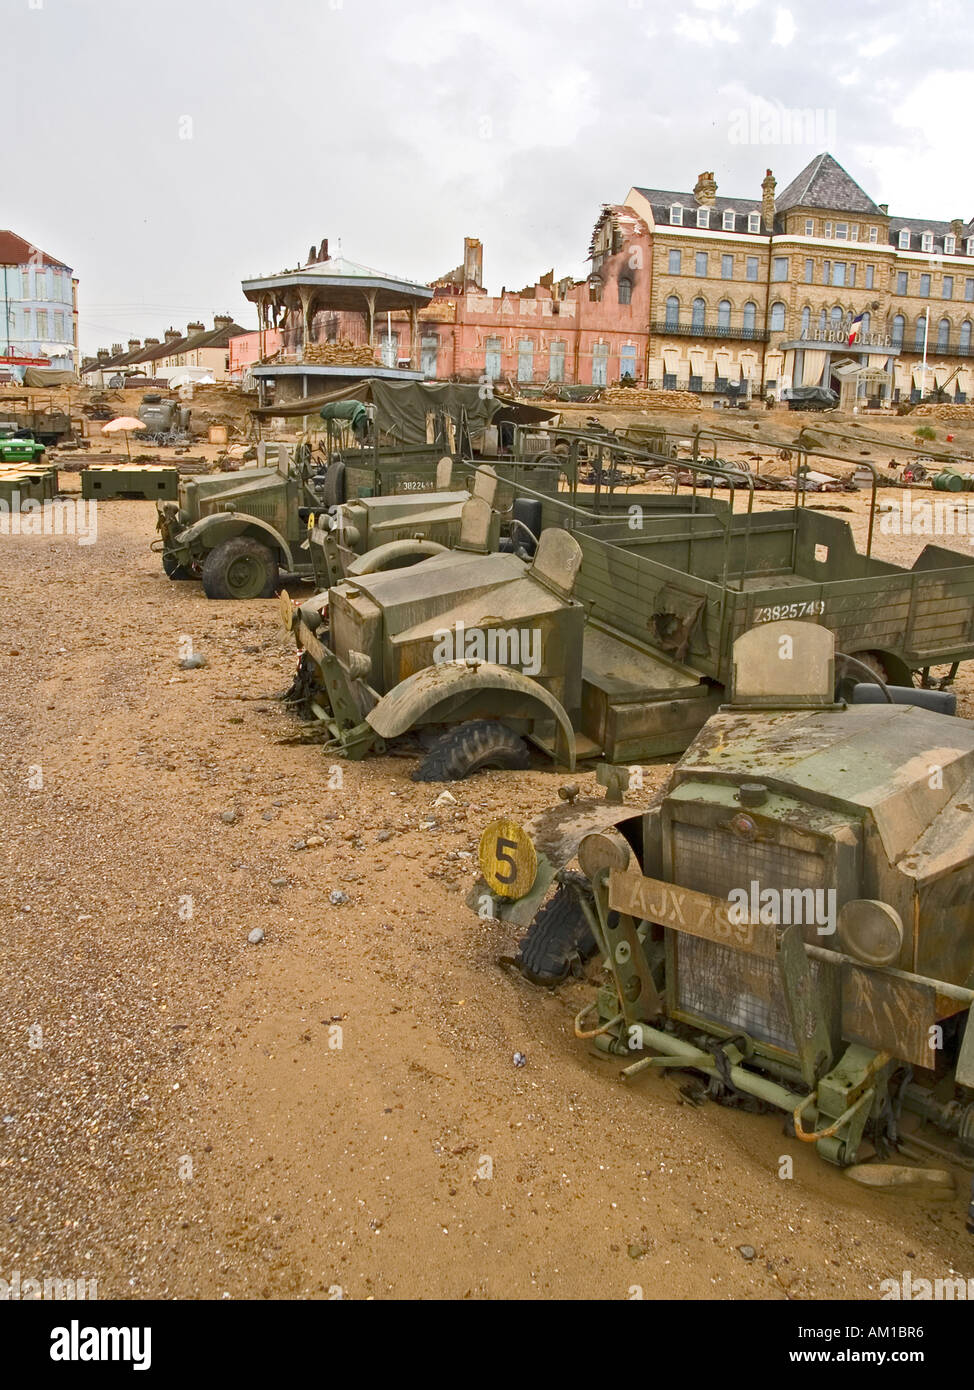 Seafront location set during the filming of Atonement a story based on the Dunkirk evacuation - Stock Image